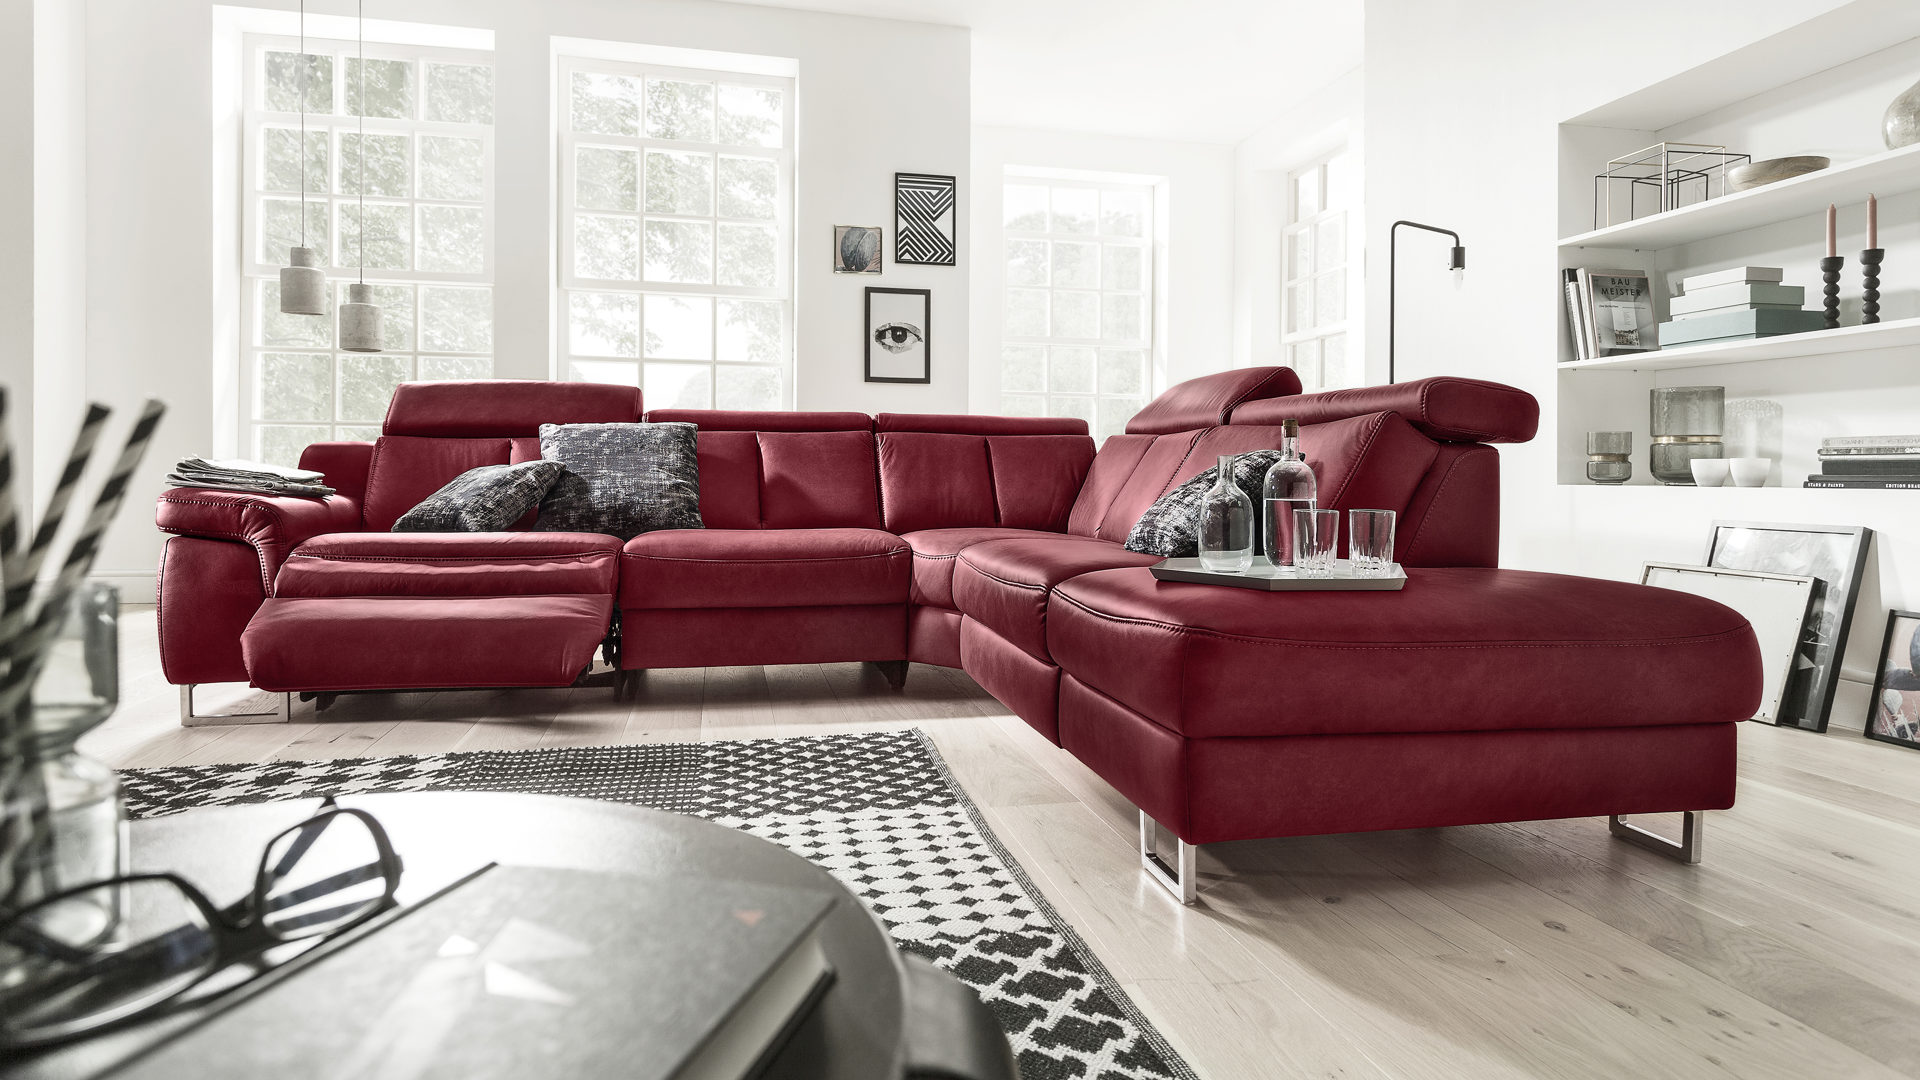 Interliving Sofa Serie 4050 Eckkombination Barolofarbenes